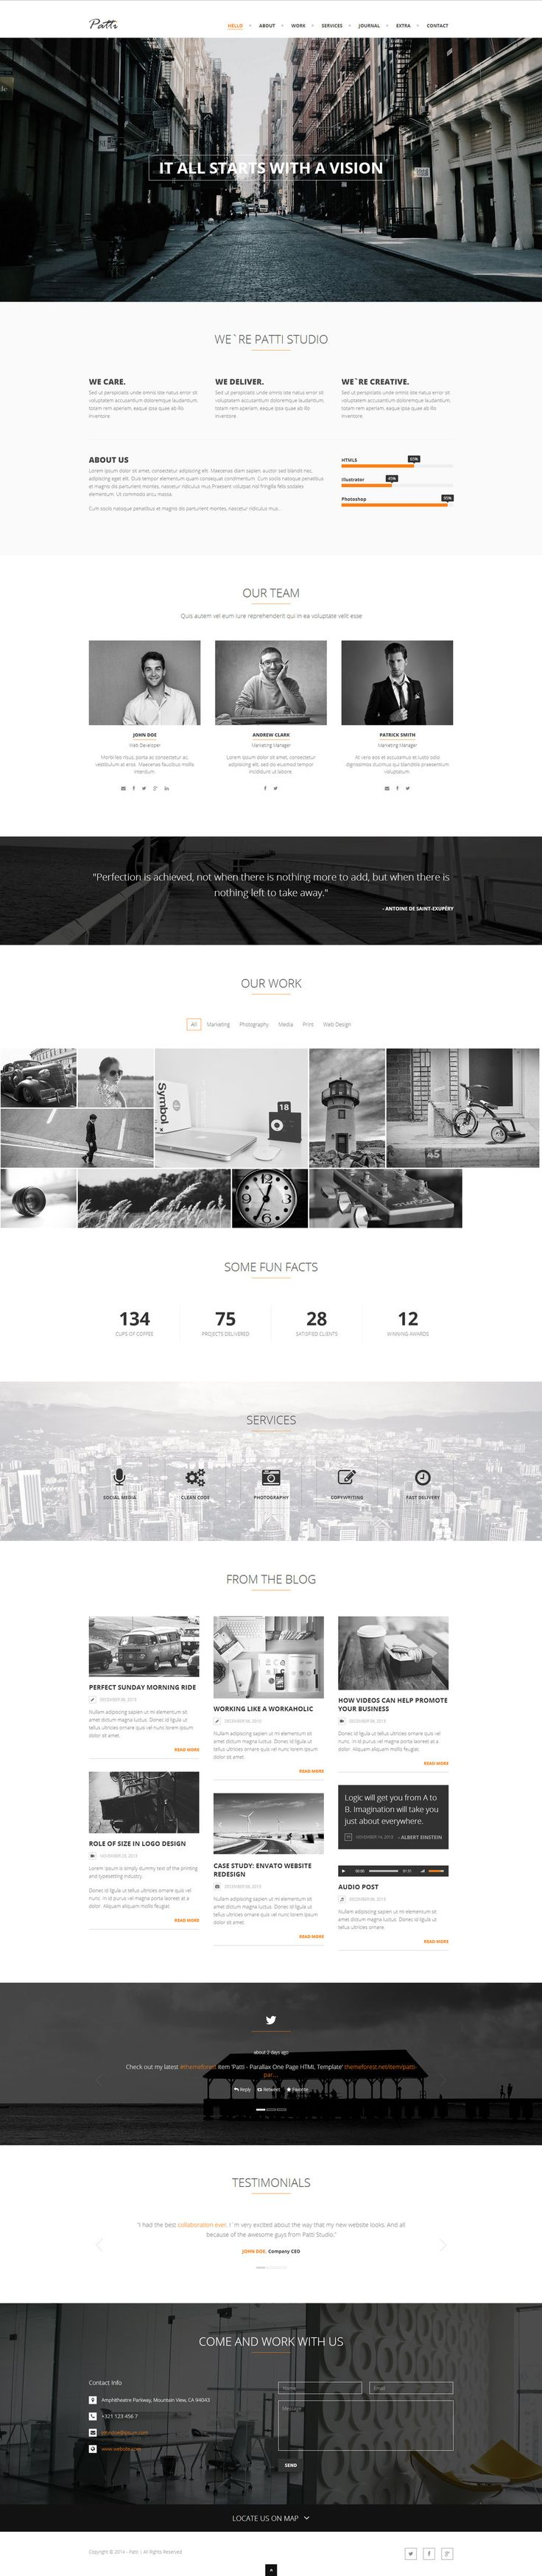 Patti - Parallax One Page HTML Template by http://DarkStaLkeRR.deviantart.com on @deviantART more on http://html5themes.org